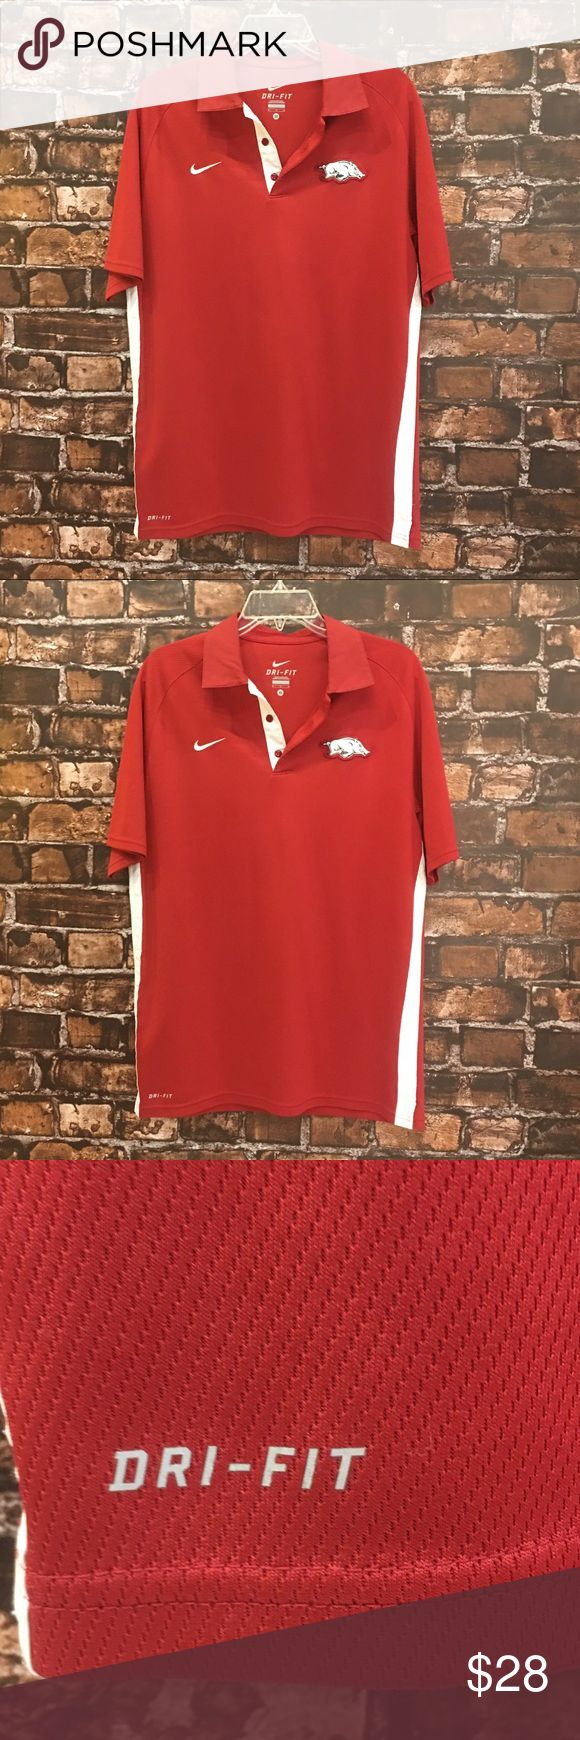 Men's M Razorback Red Nike Dri-Fit Polo 🐗 We live in Razorback Nation! Don't forget to support our piggies!! Very nice Razorback Red Polo. Short sleeve. Nike. Dri-Fit. 🐗 Nike Shirts Polos